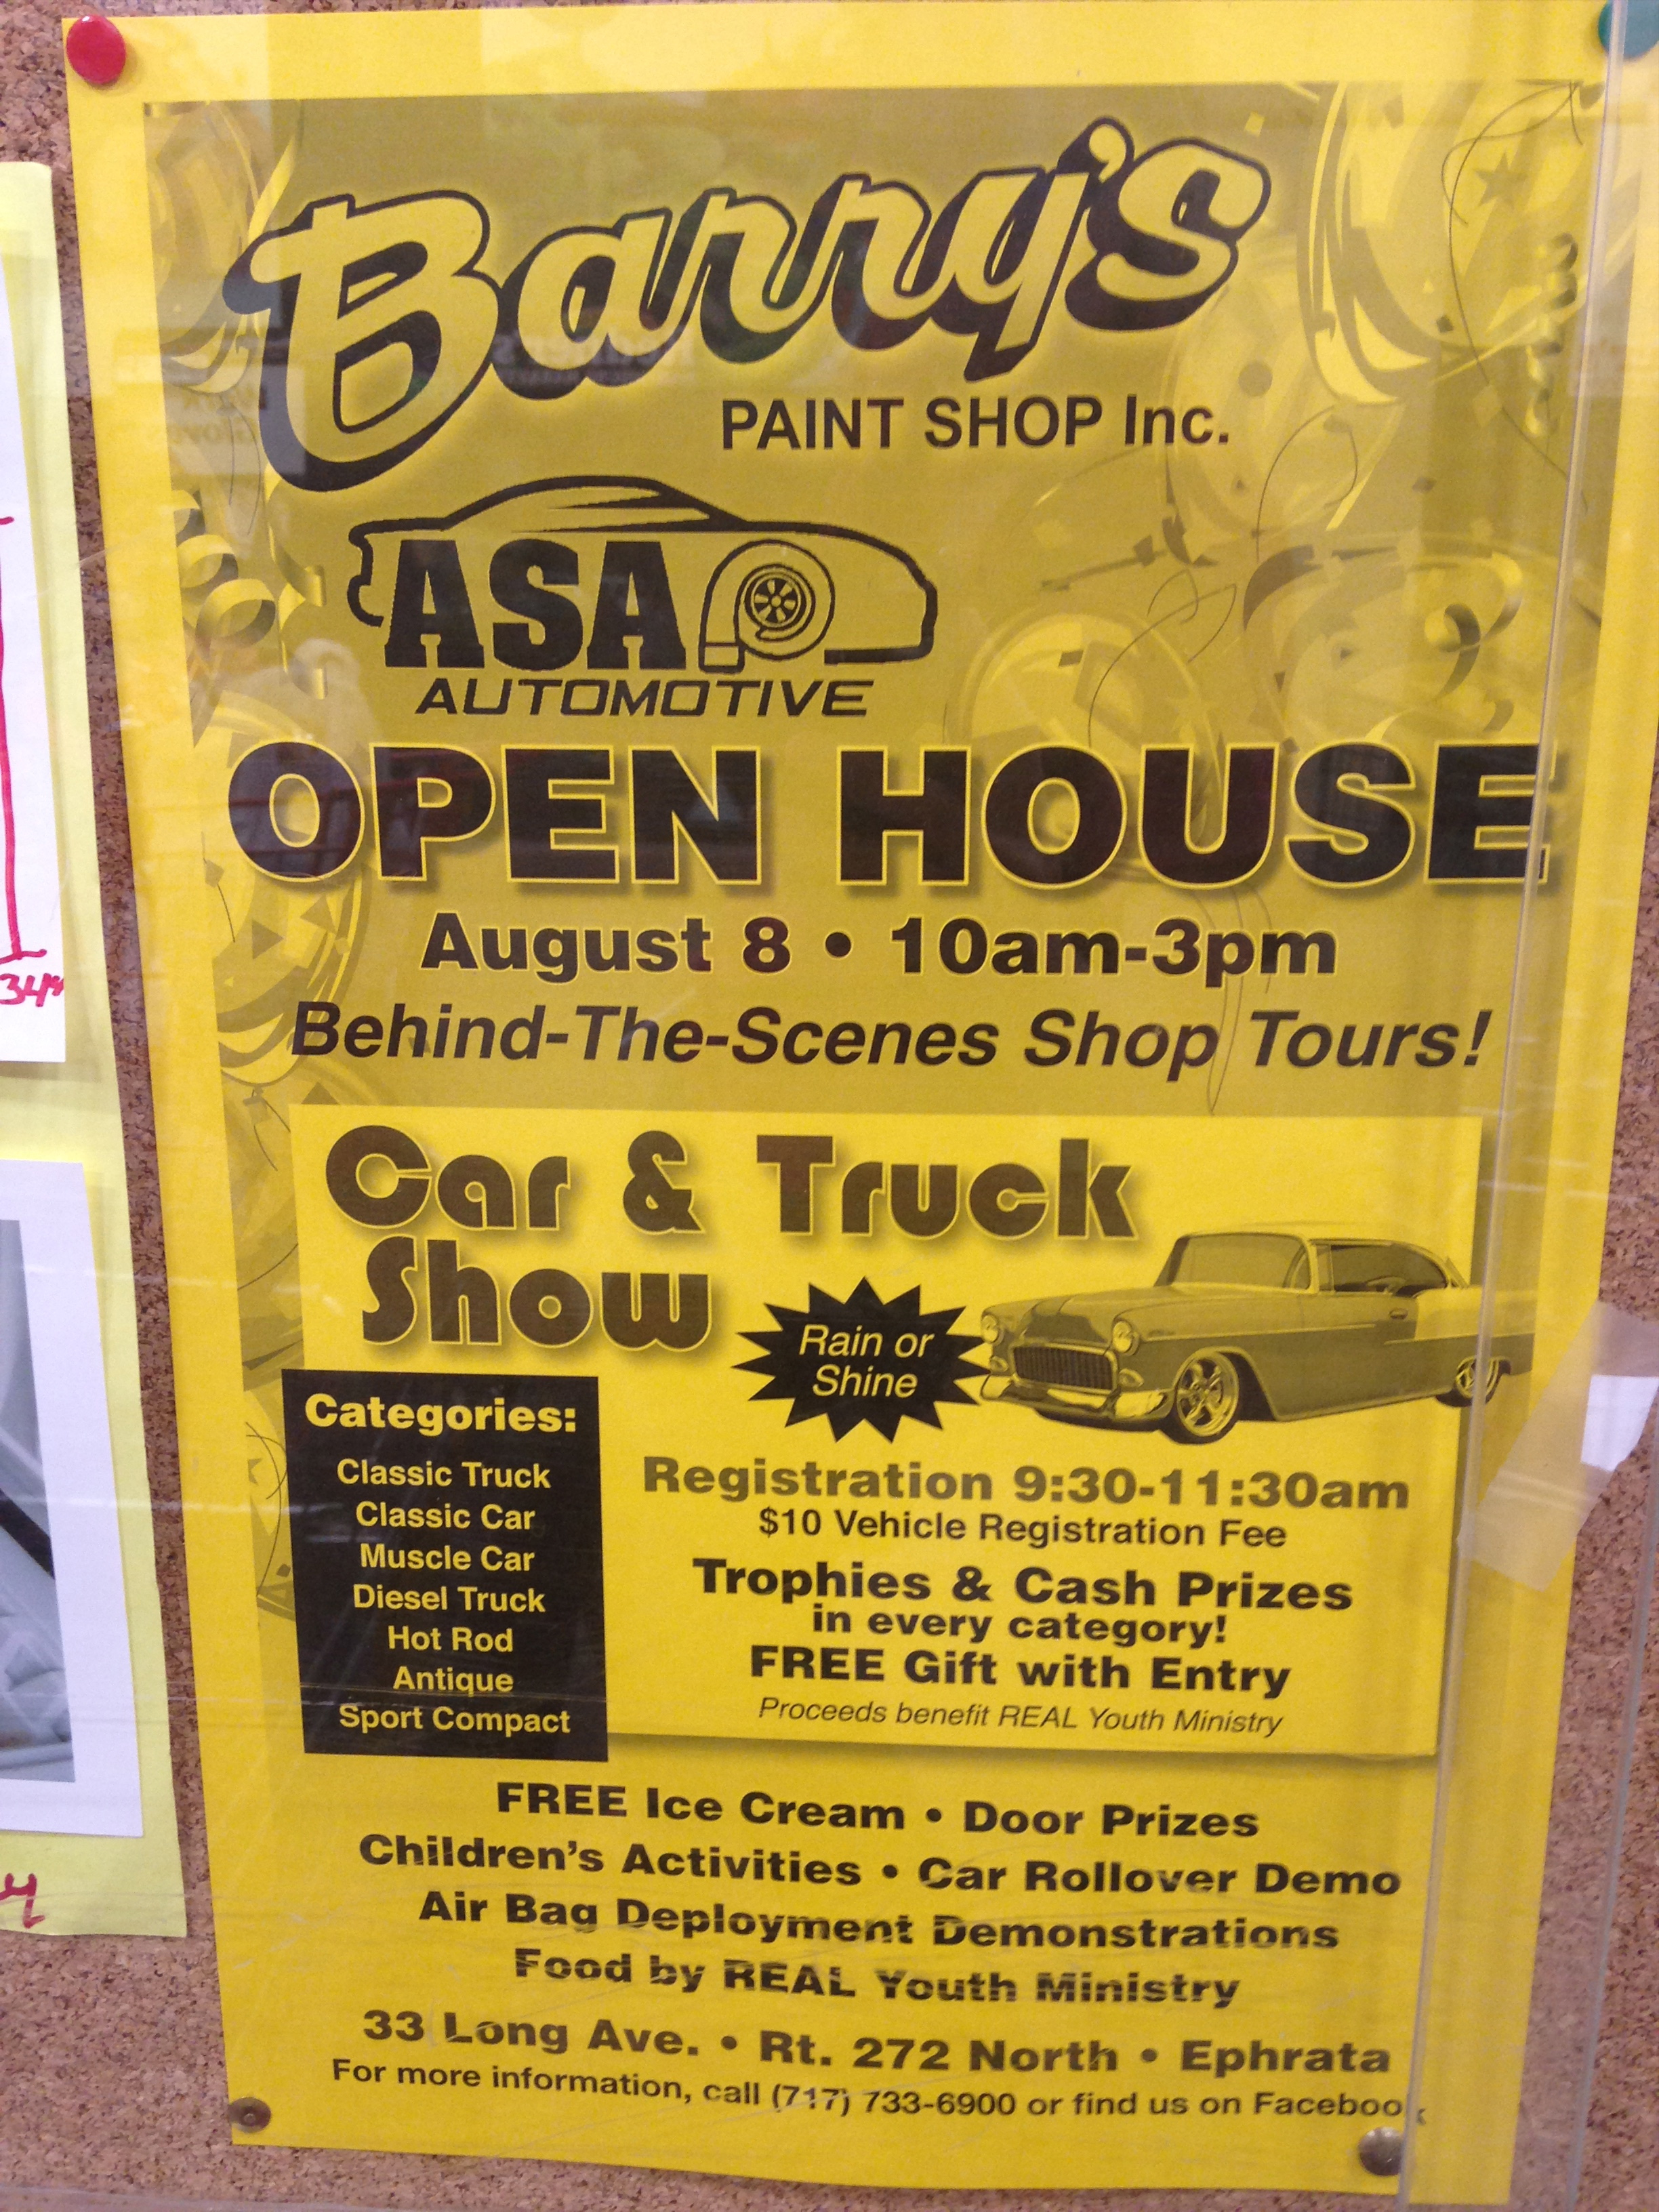 Barry's Open House in Ephrata on August 8, 2015